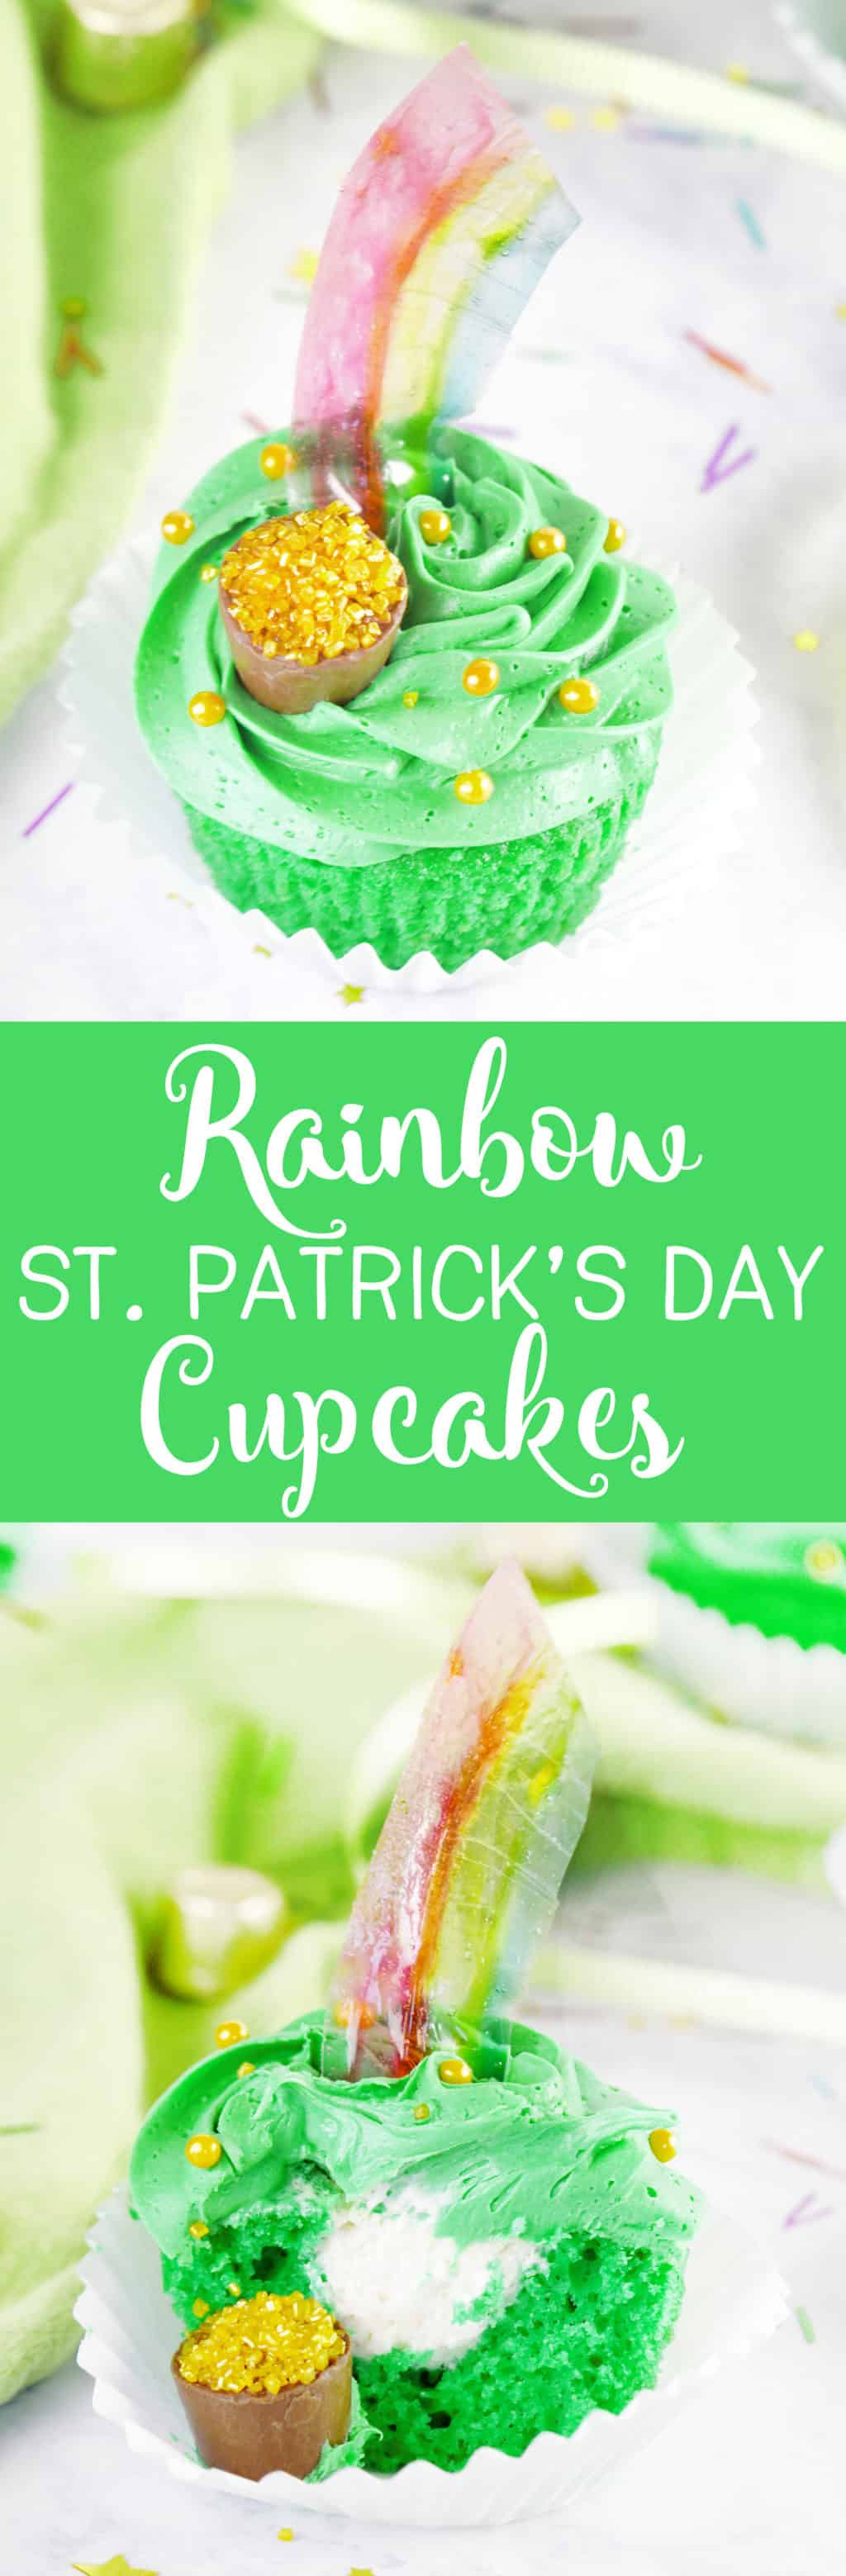 Rainbow St. Patrick's Day Cupcakes with Irish Cream Filling! A yummy St. Patrick's Day treat with fun see-through rainbows!